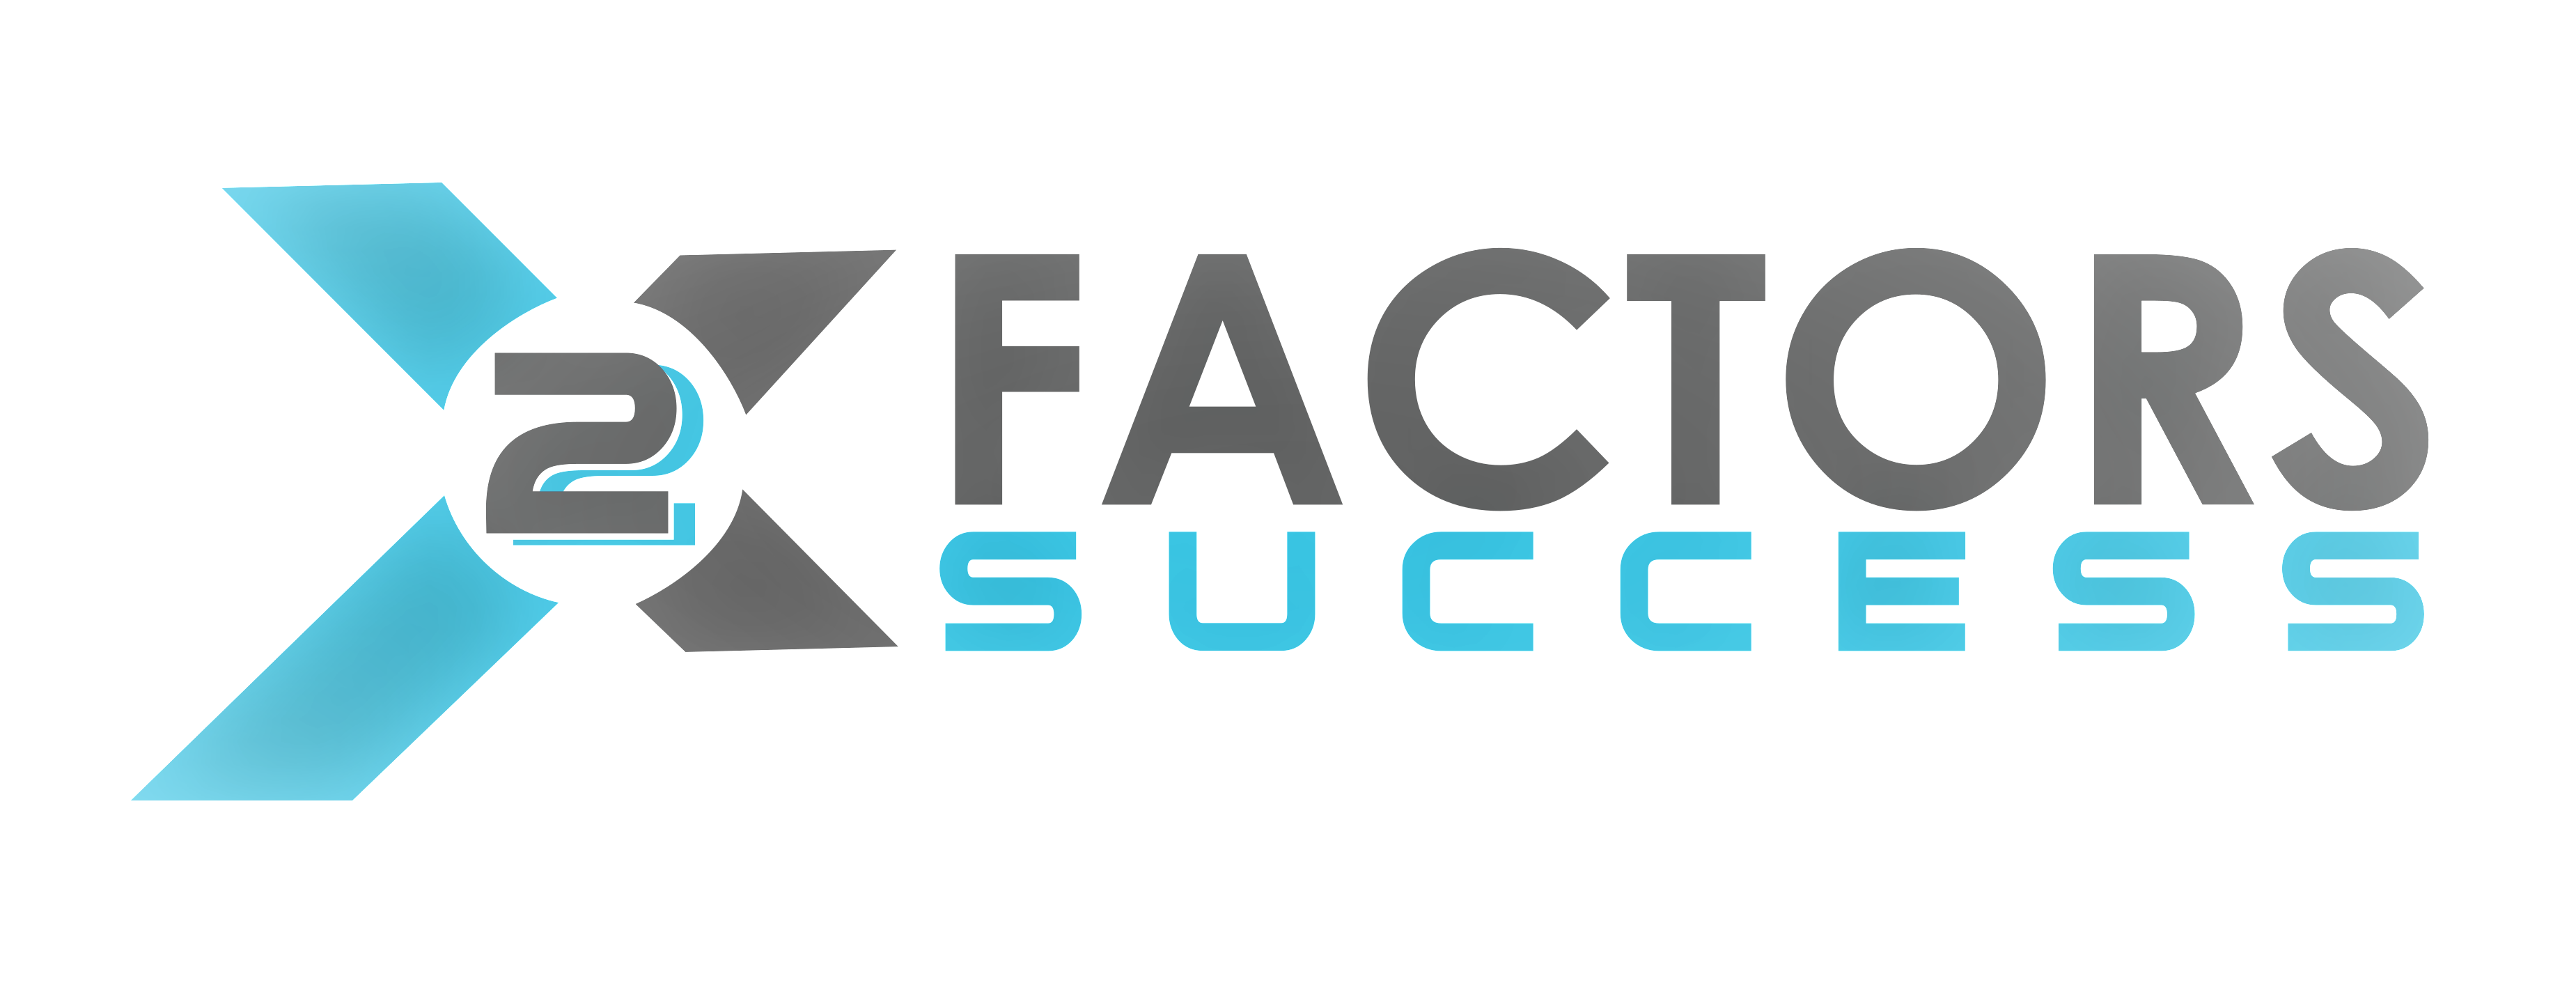 X-factors2success